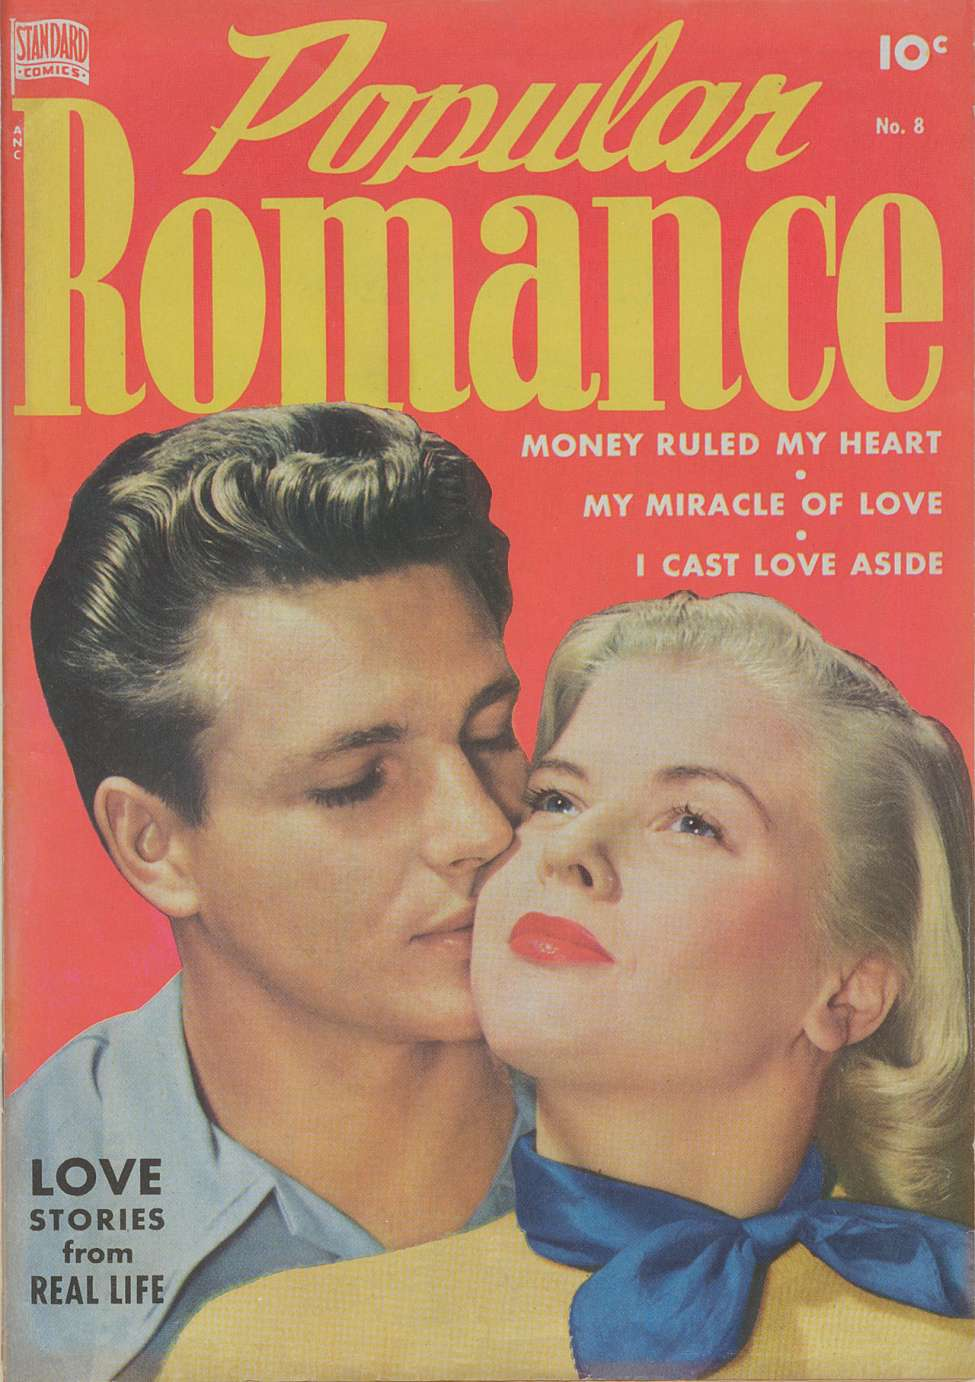 Comic Book Cover For Popular Romance #8